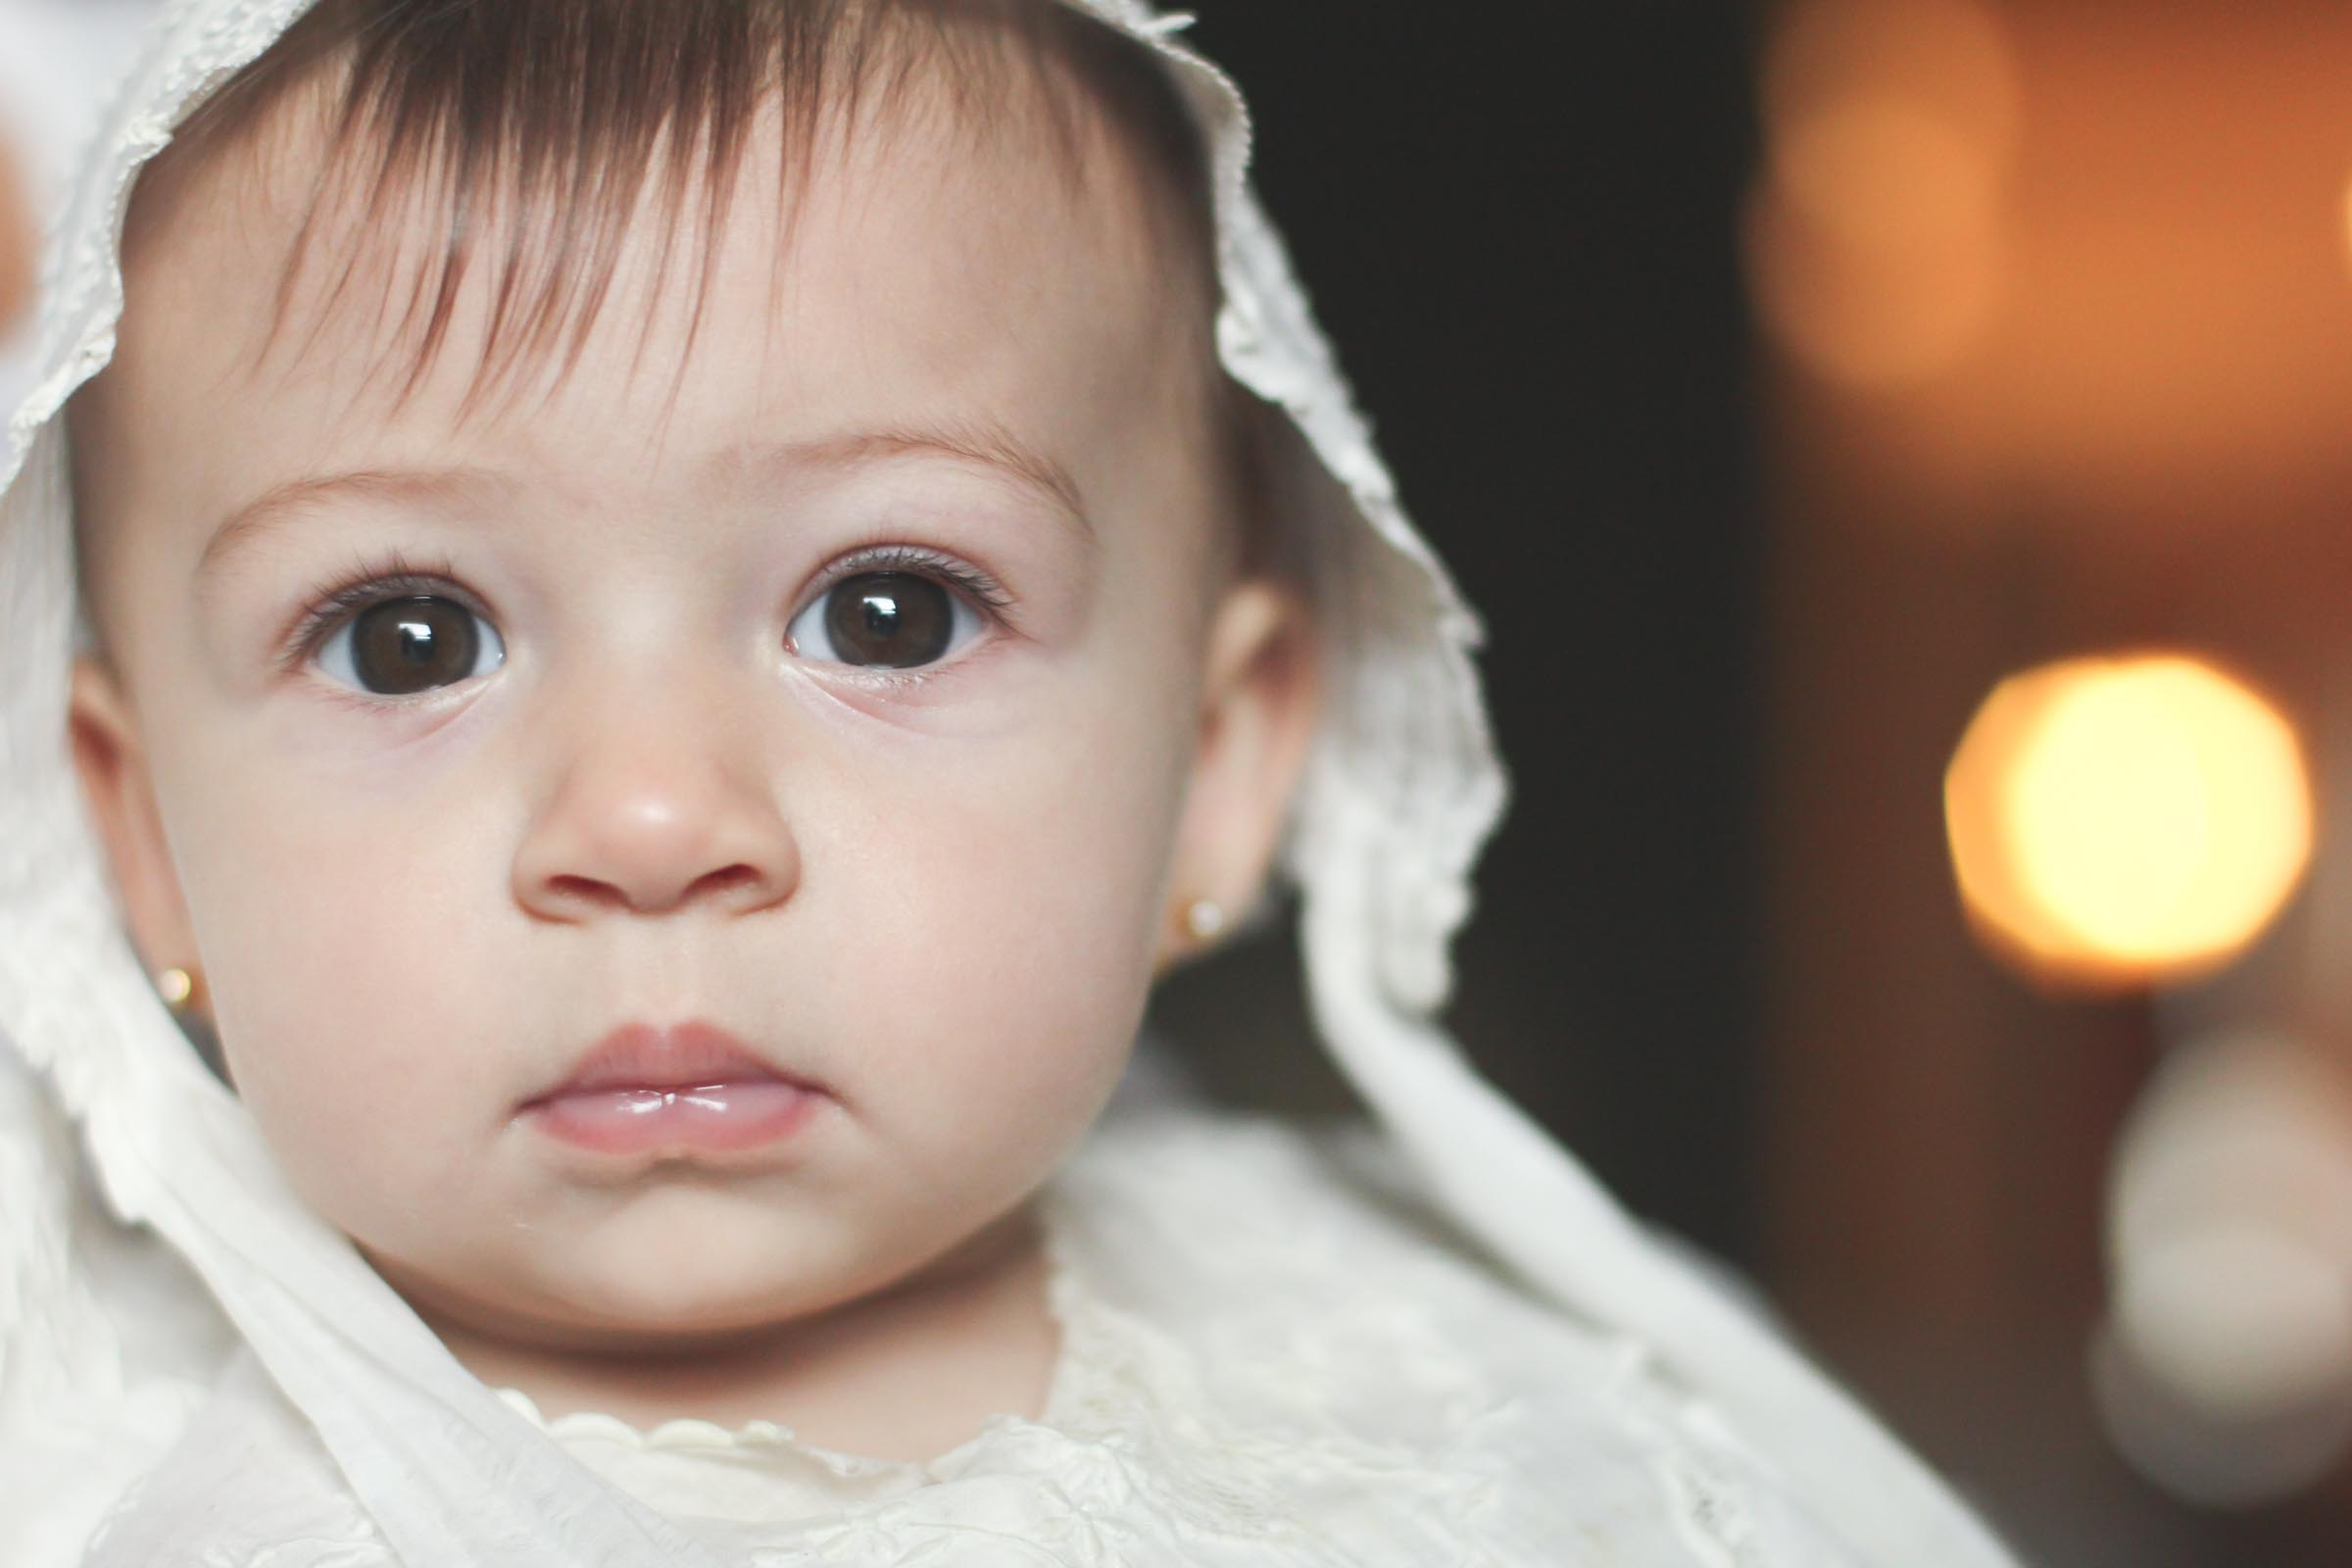 ashley-landry-photography-raymond-09-2016-2-of-41